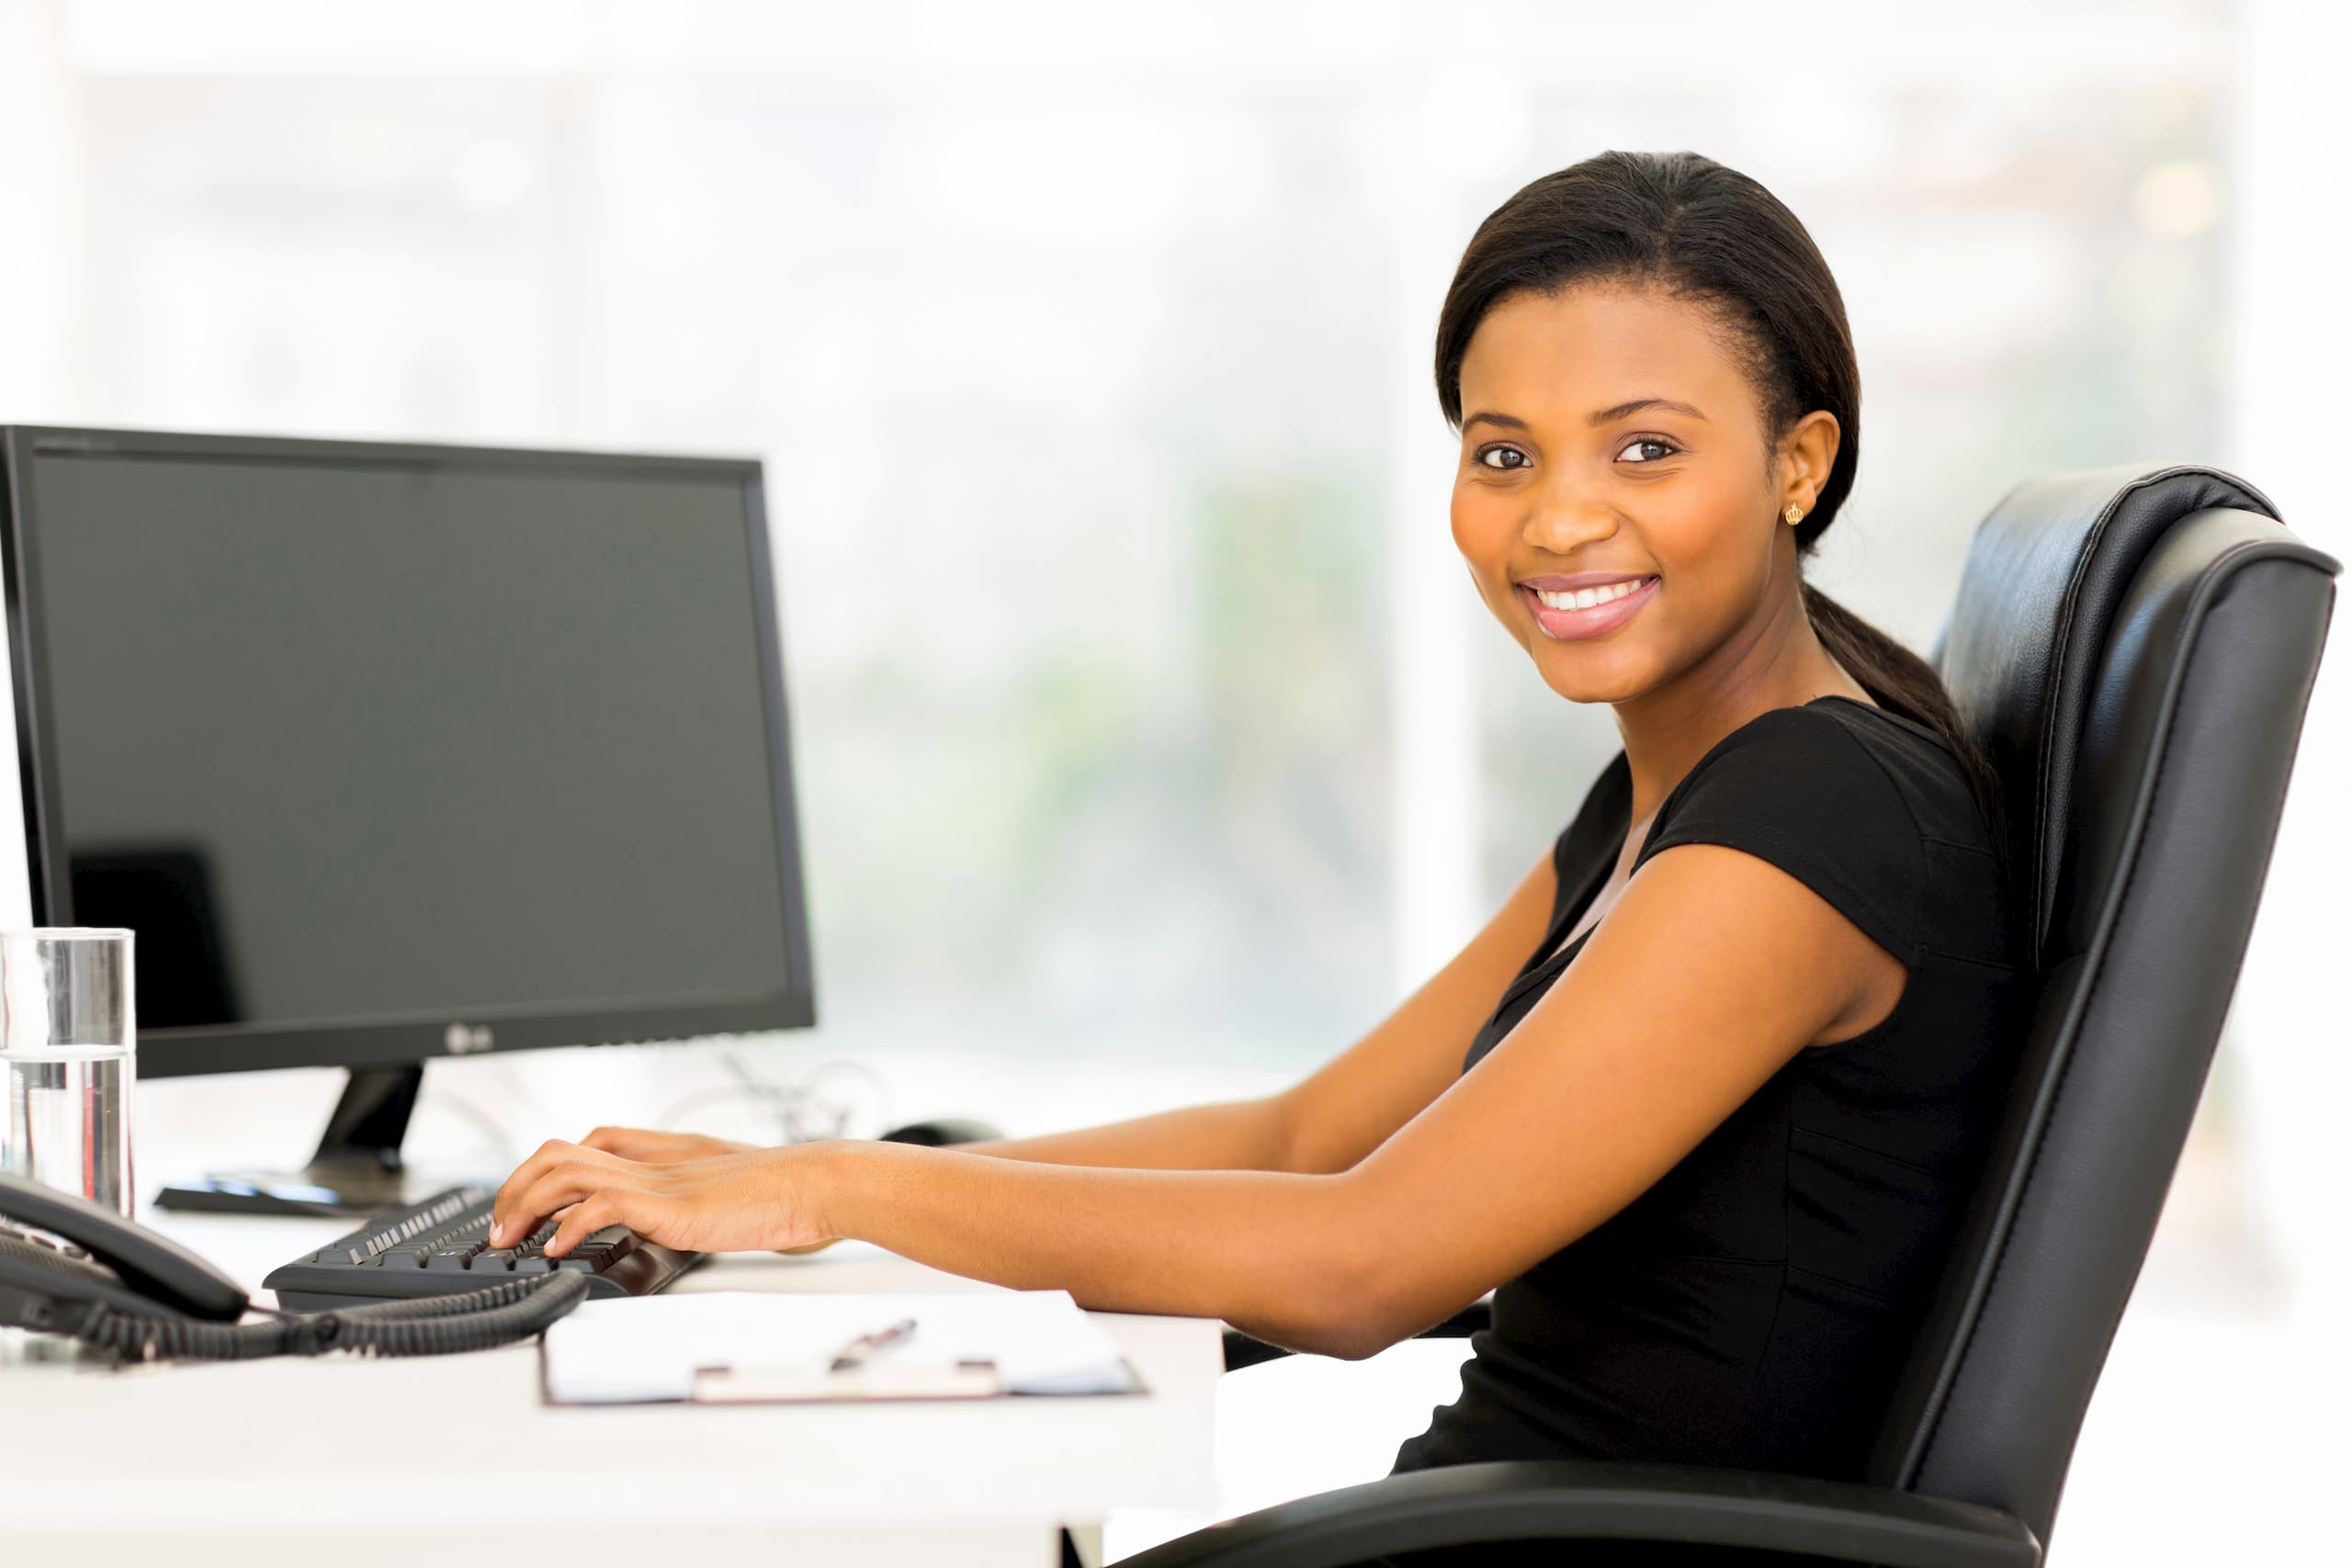 woman happy with her work from home ergonomics